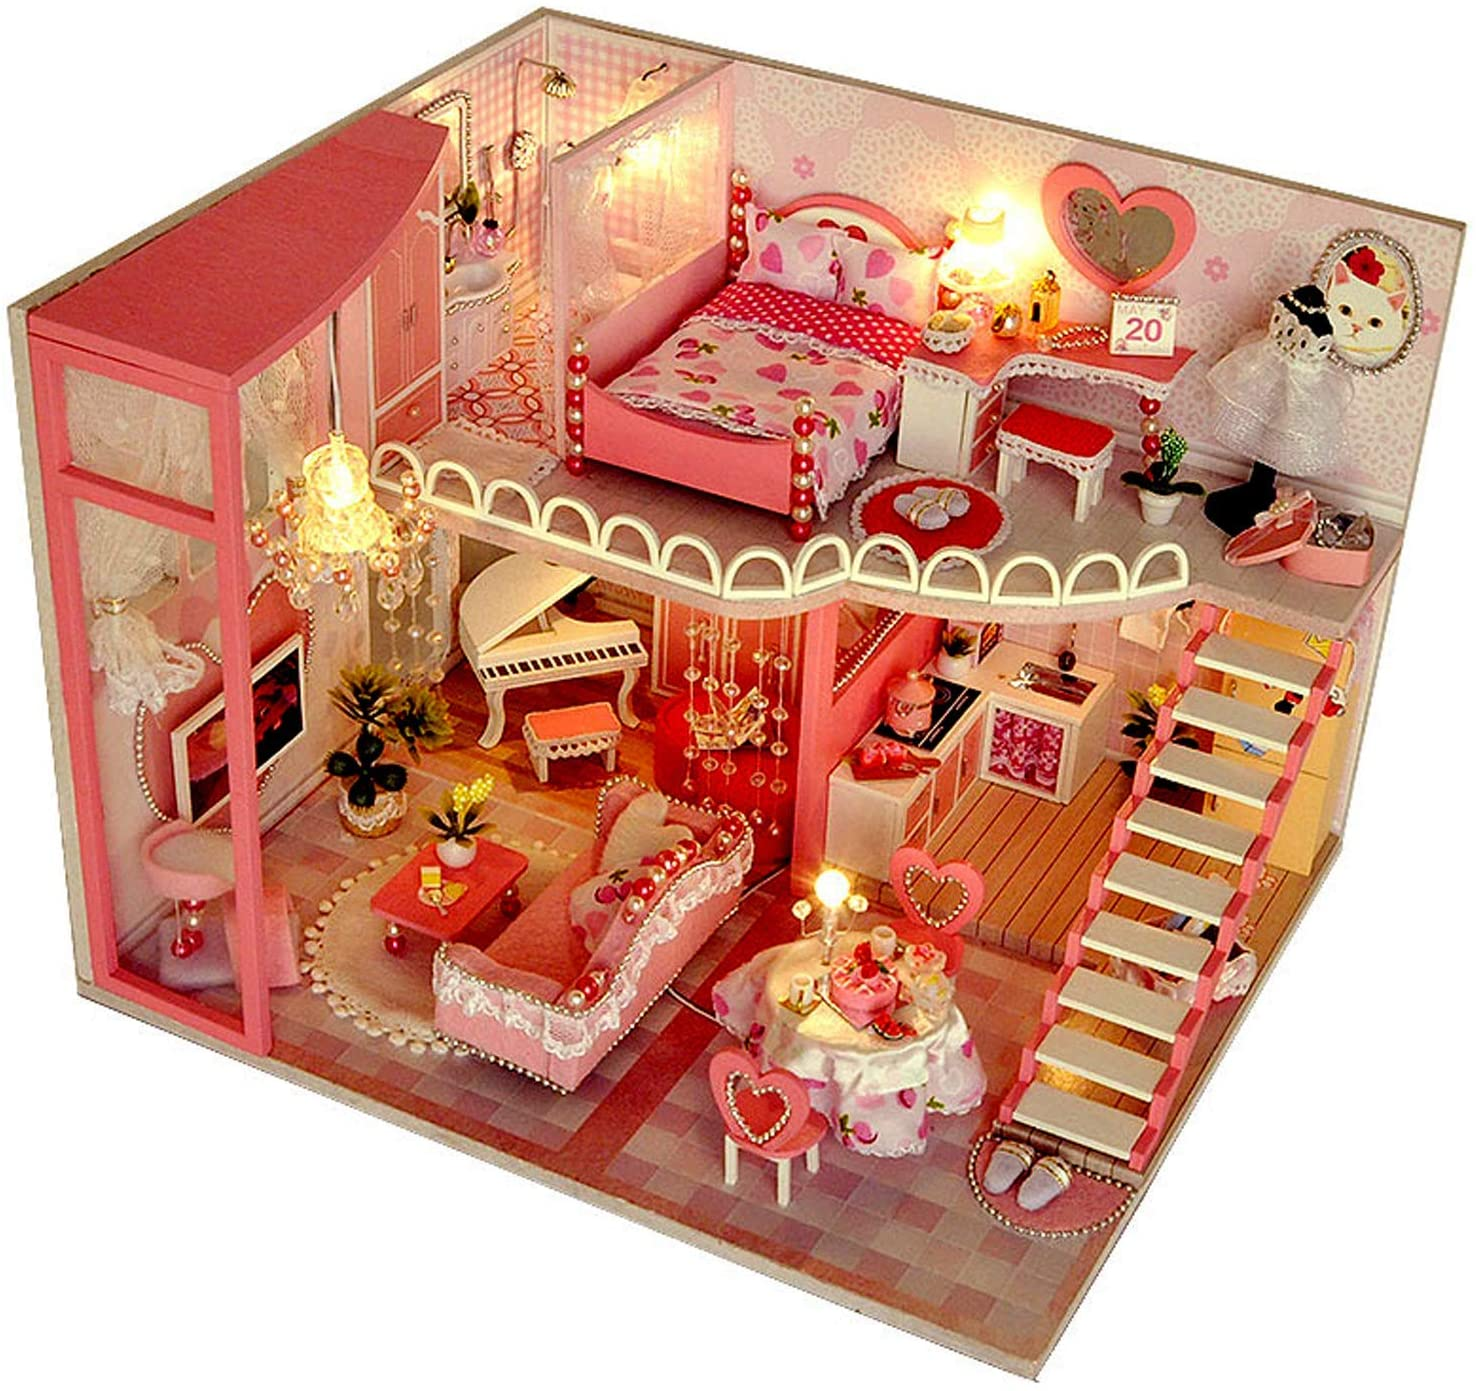 UniHobby DIY Miniatures Sale Special Price OFFicial mail order Dollhouse Kit Furniture House Tiny with